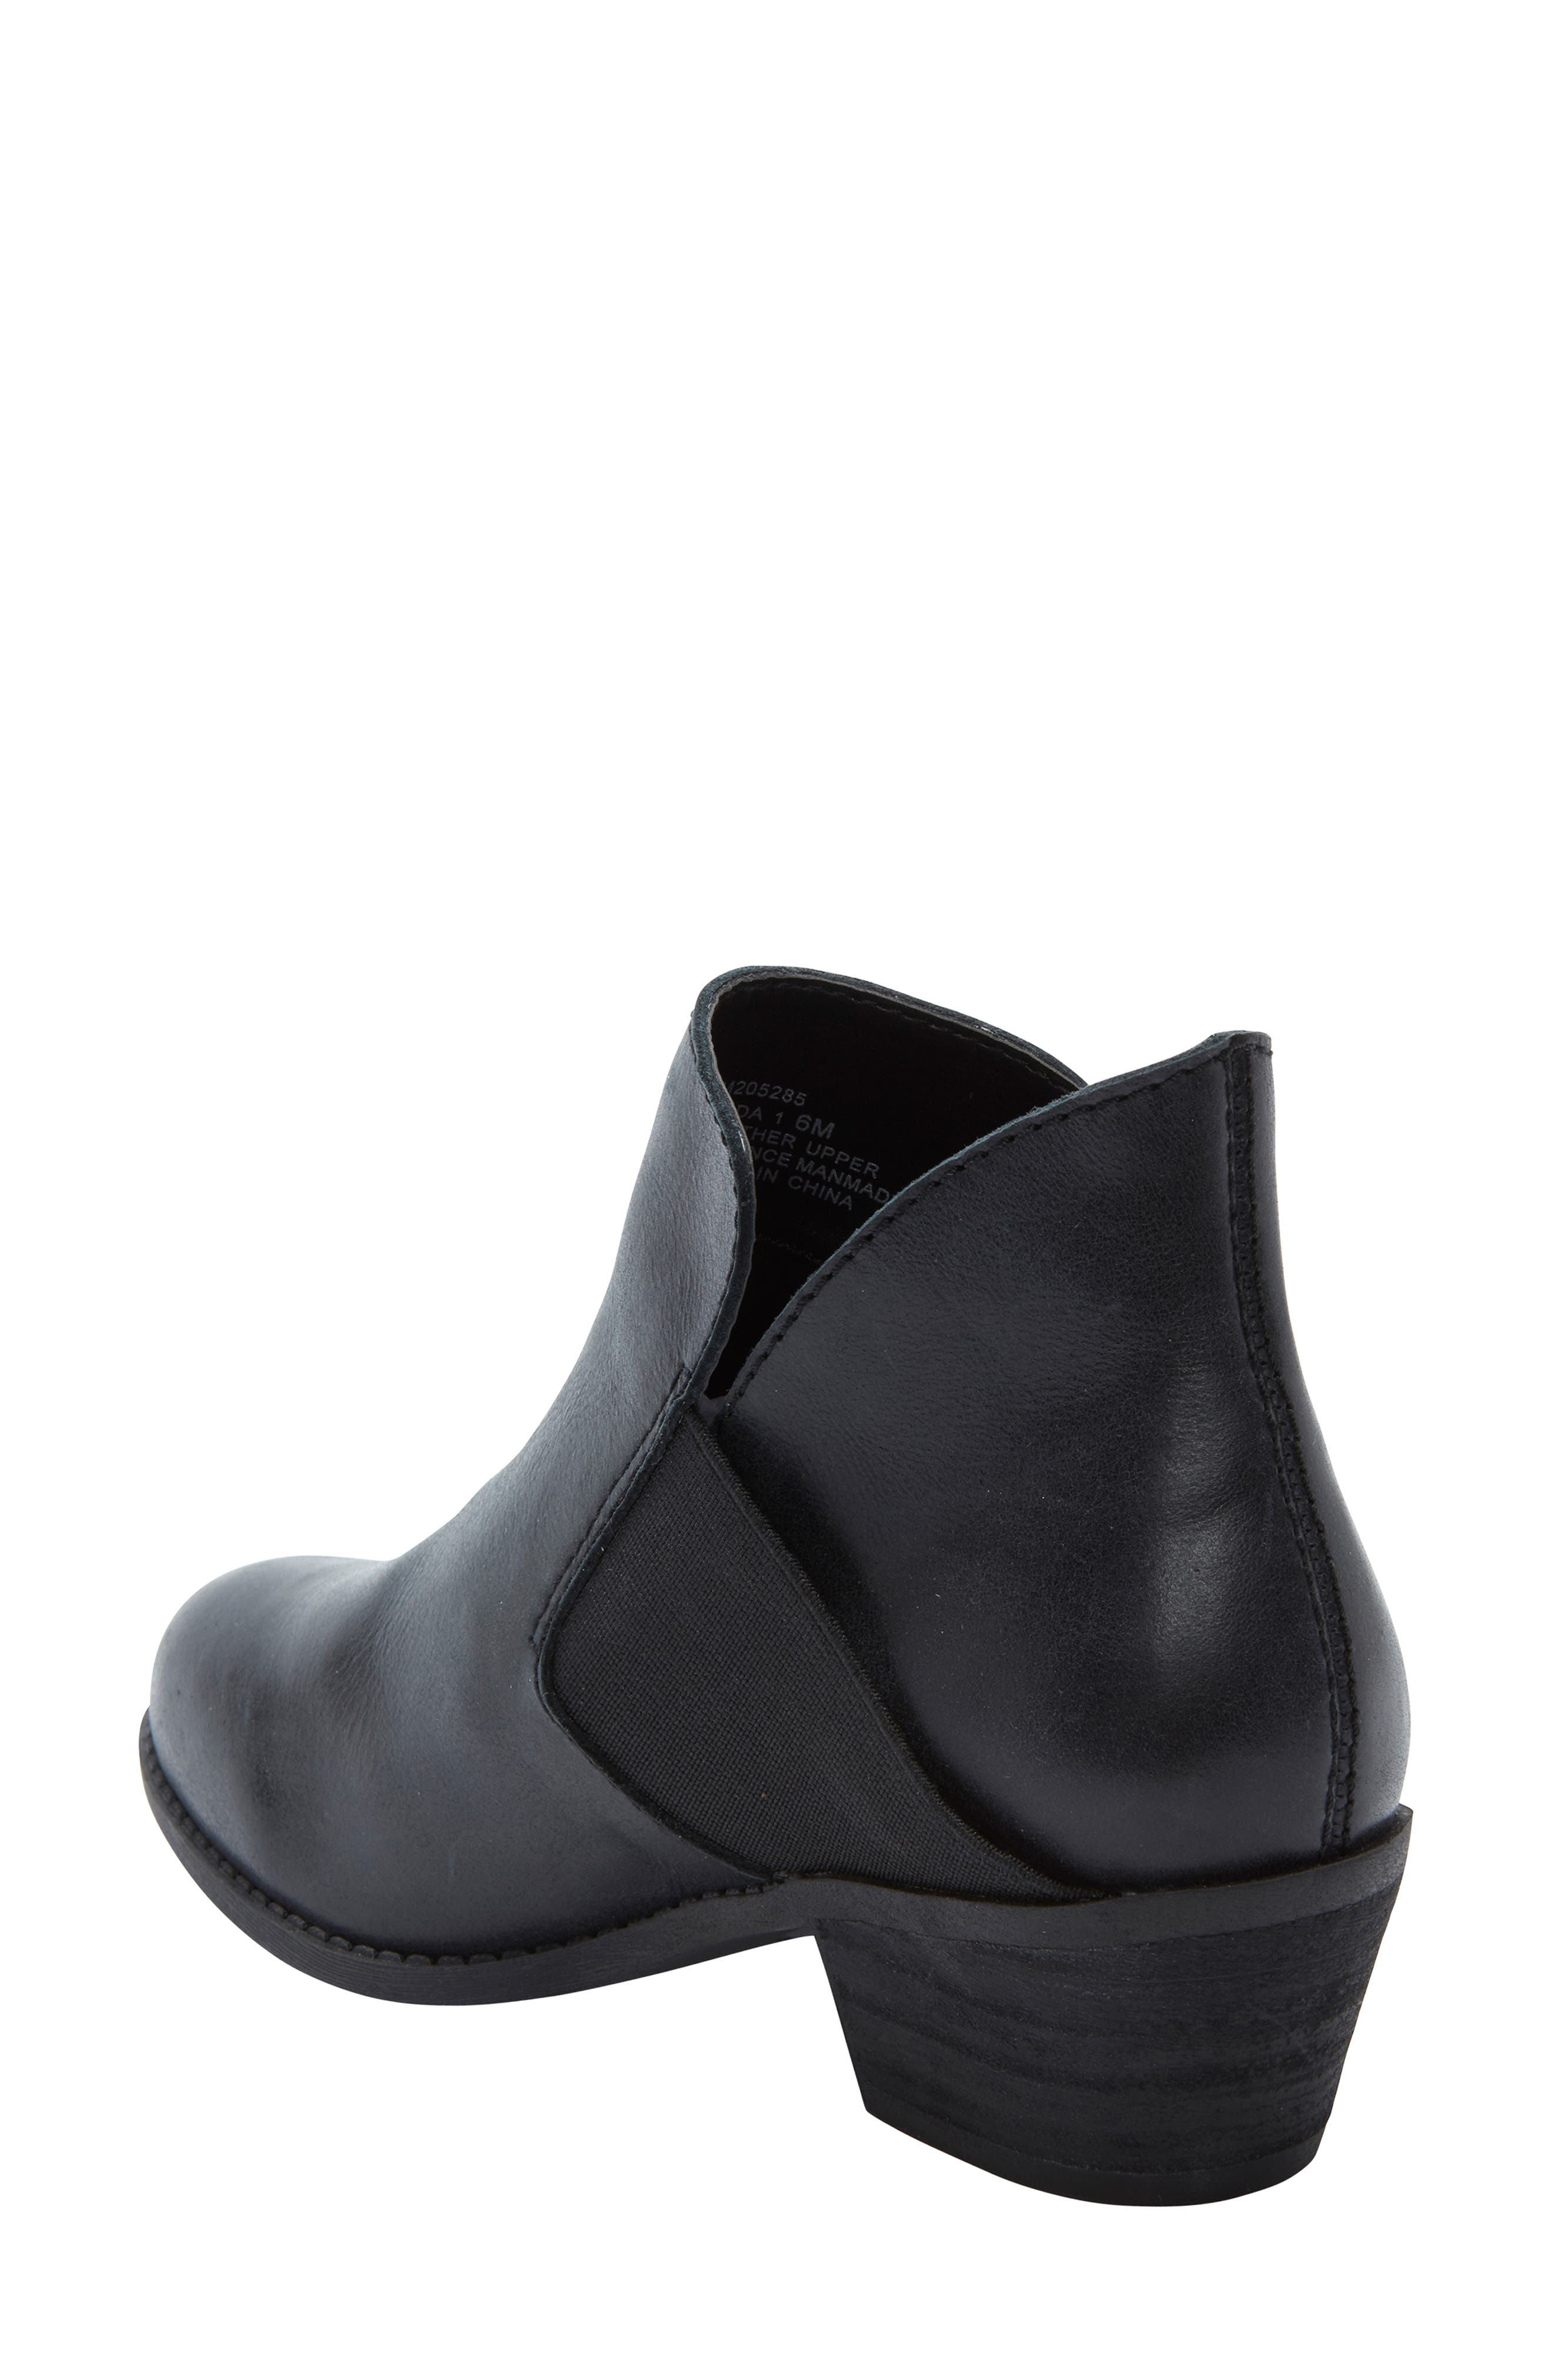 ME TOO, Zada Bootie, Alternate thumbnail 2, color, 010